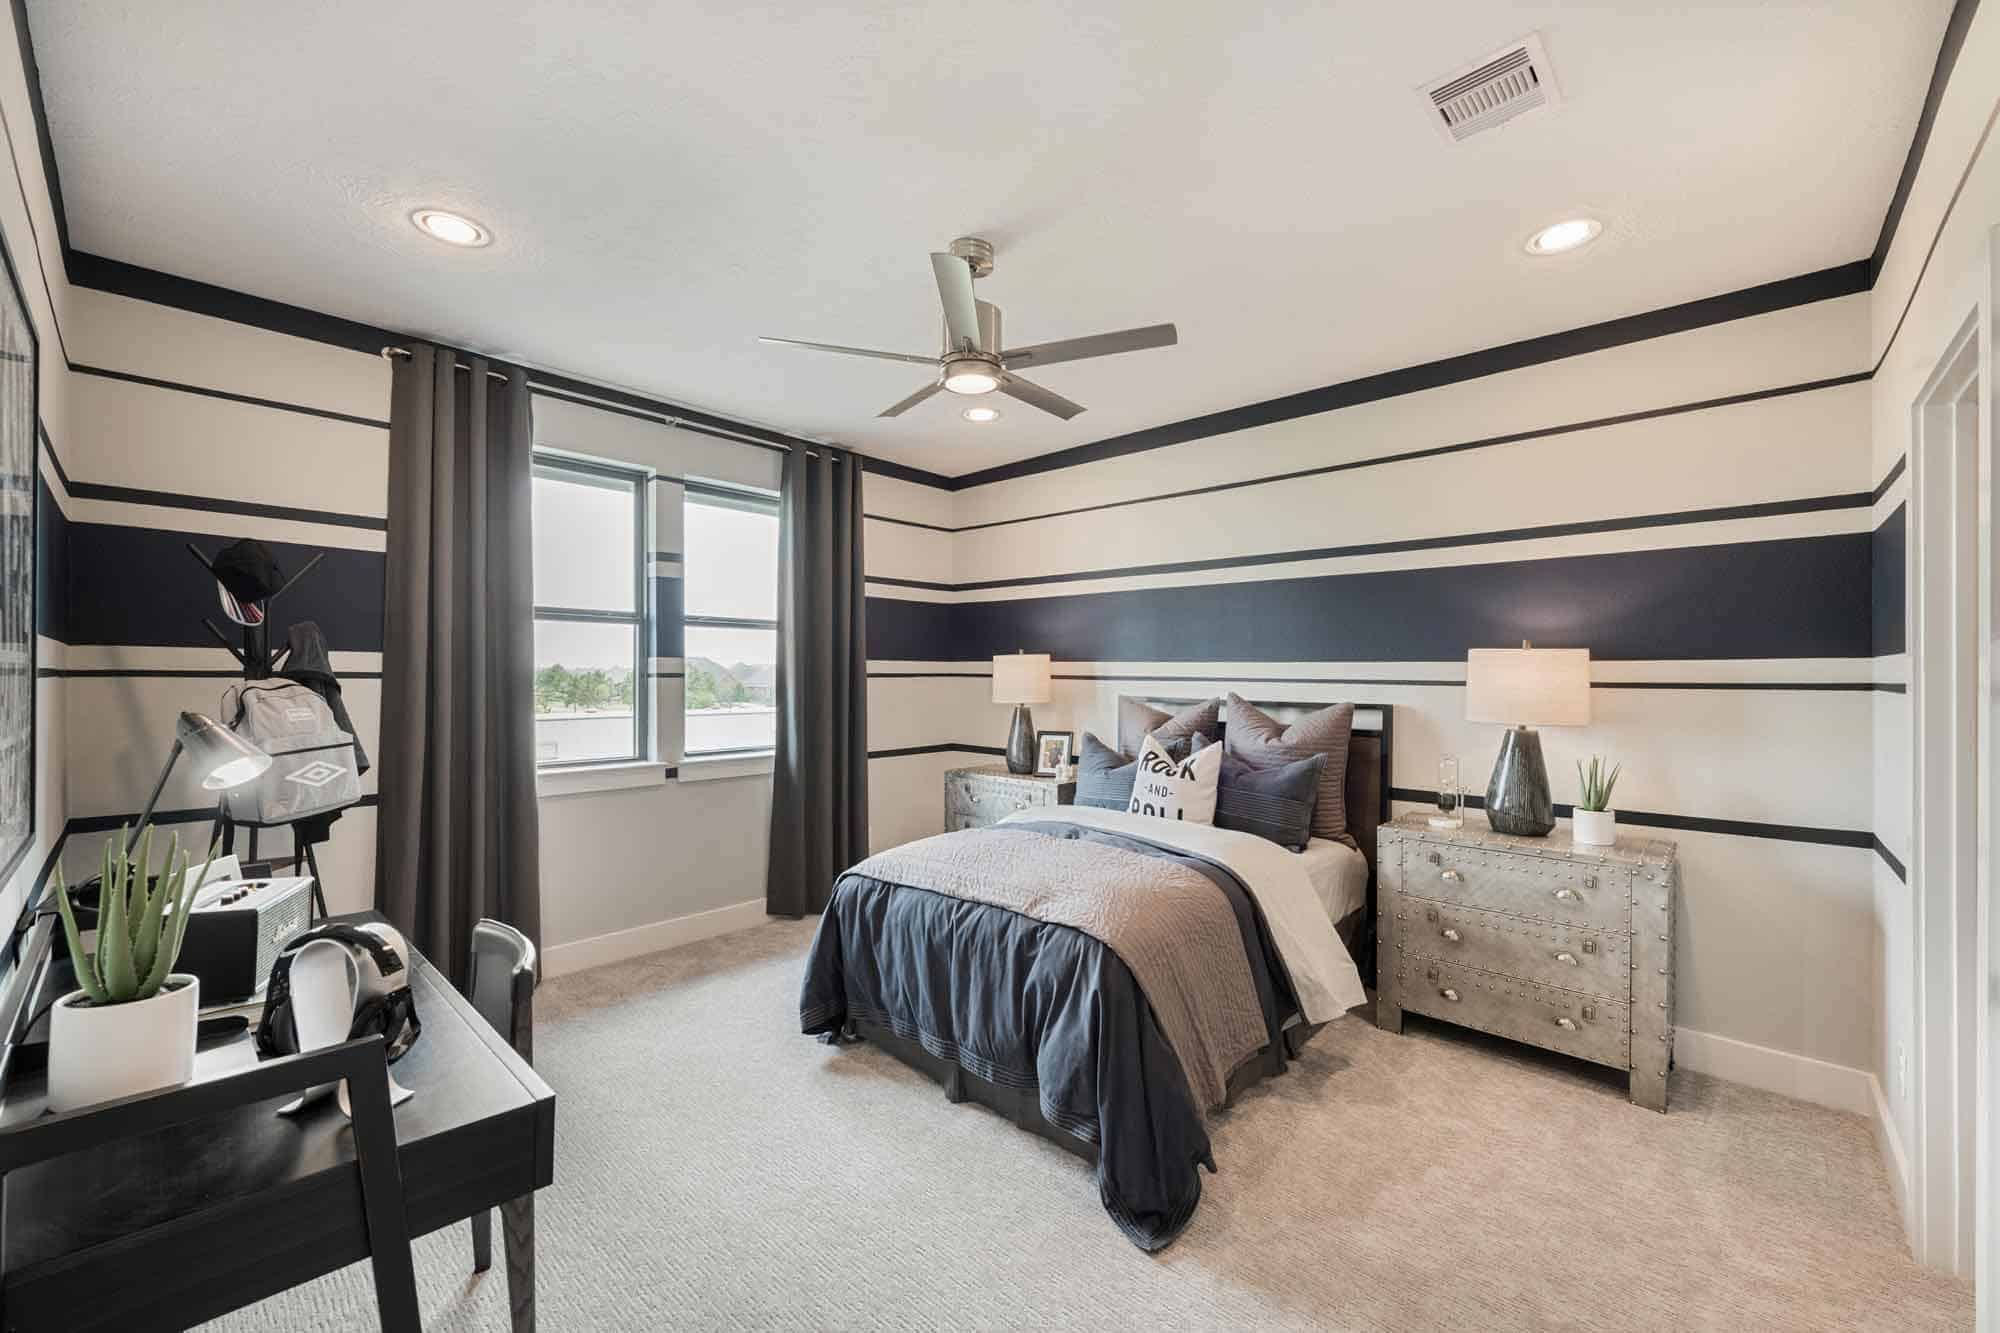 Bedroom featured in the Snyder By Tri Pointe Homes in Houston, TX